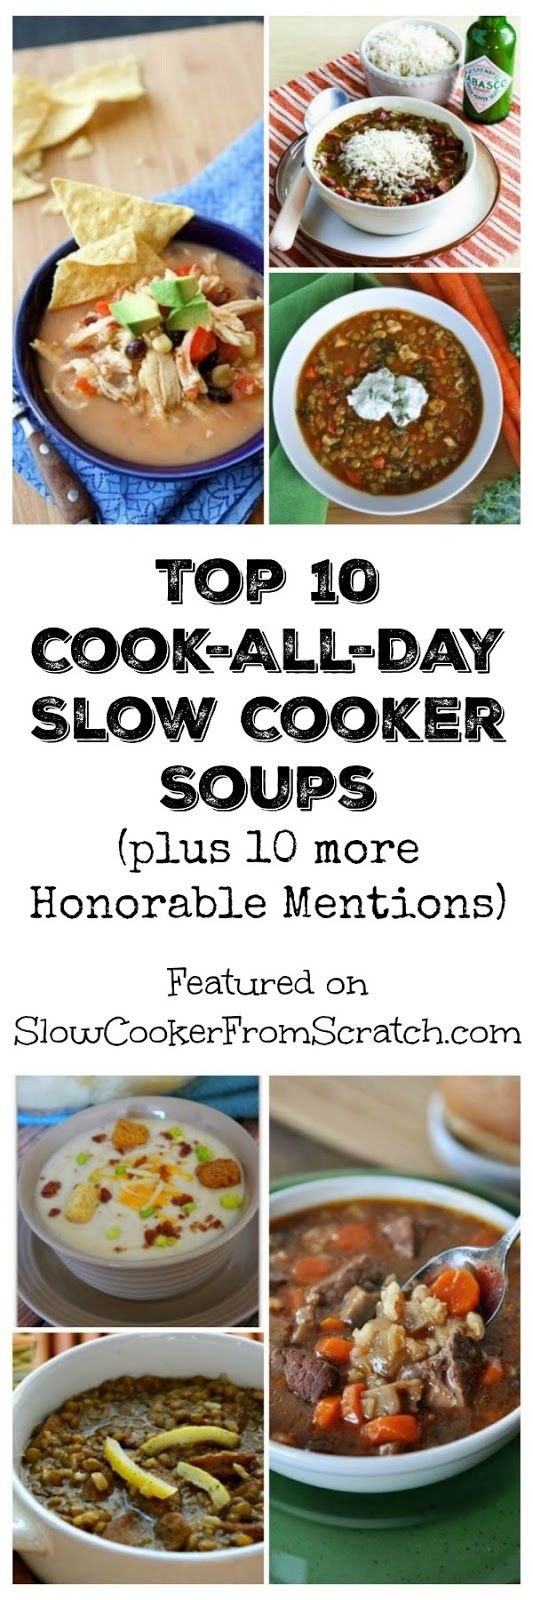 For everyone who needs cook-all-day slow cooker recipes, here are the Top Ten Cook-All-Day Soups from Slow Cooker from Scratch (plus 10 Honorable Mentions) [found on SlowCookerFromScratch.com]: